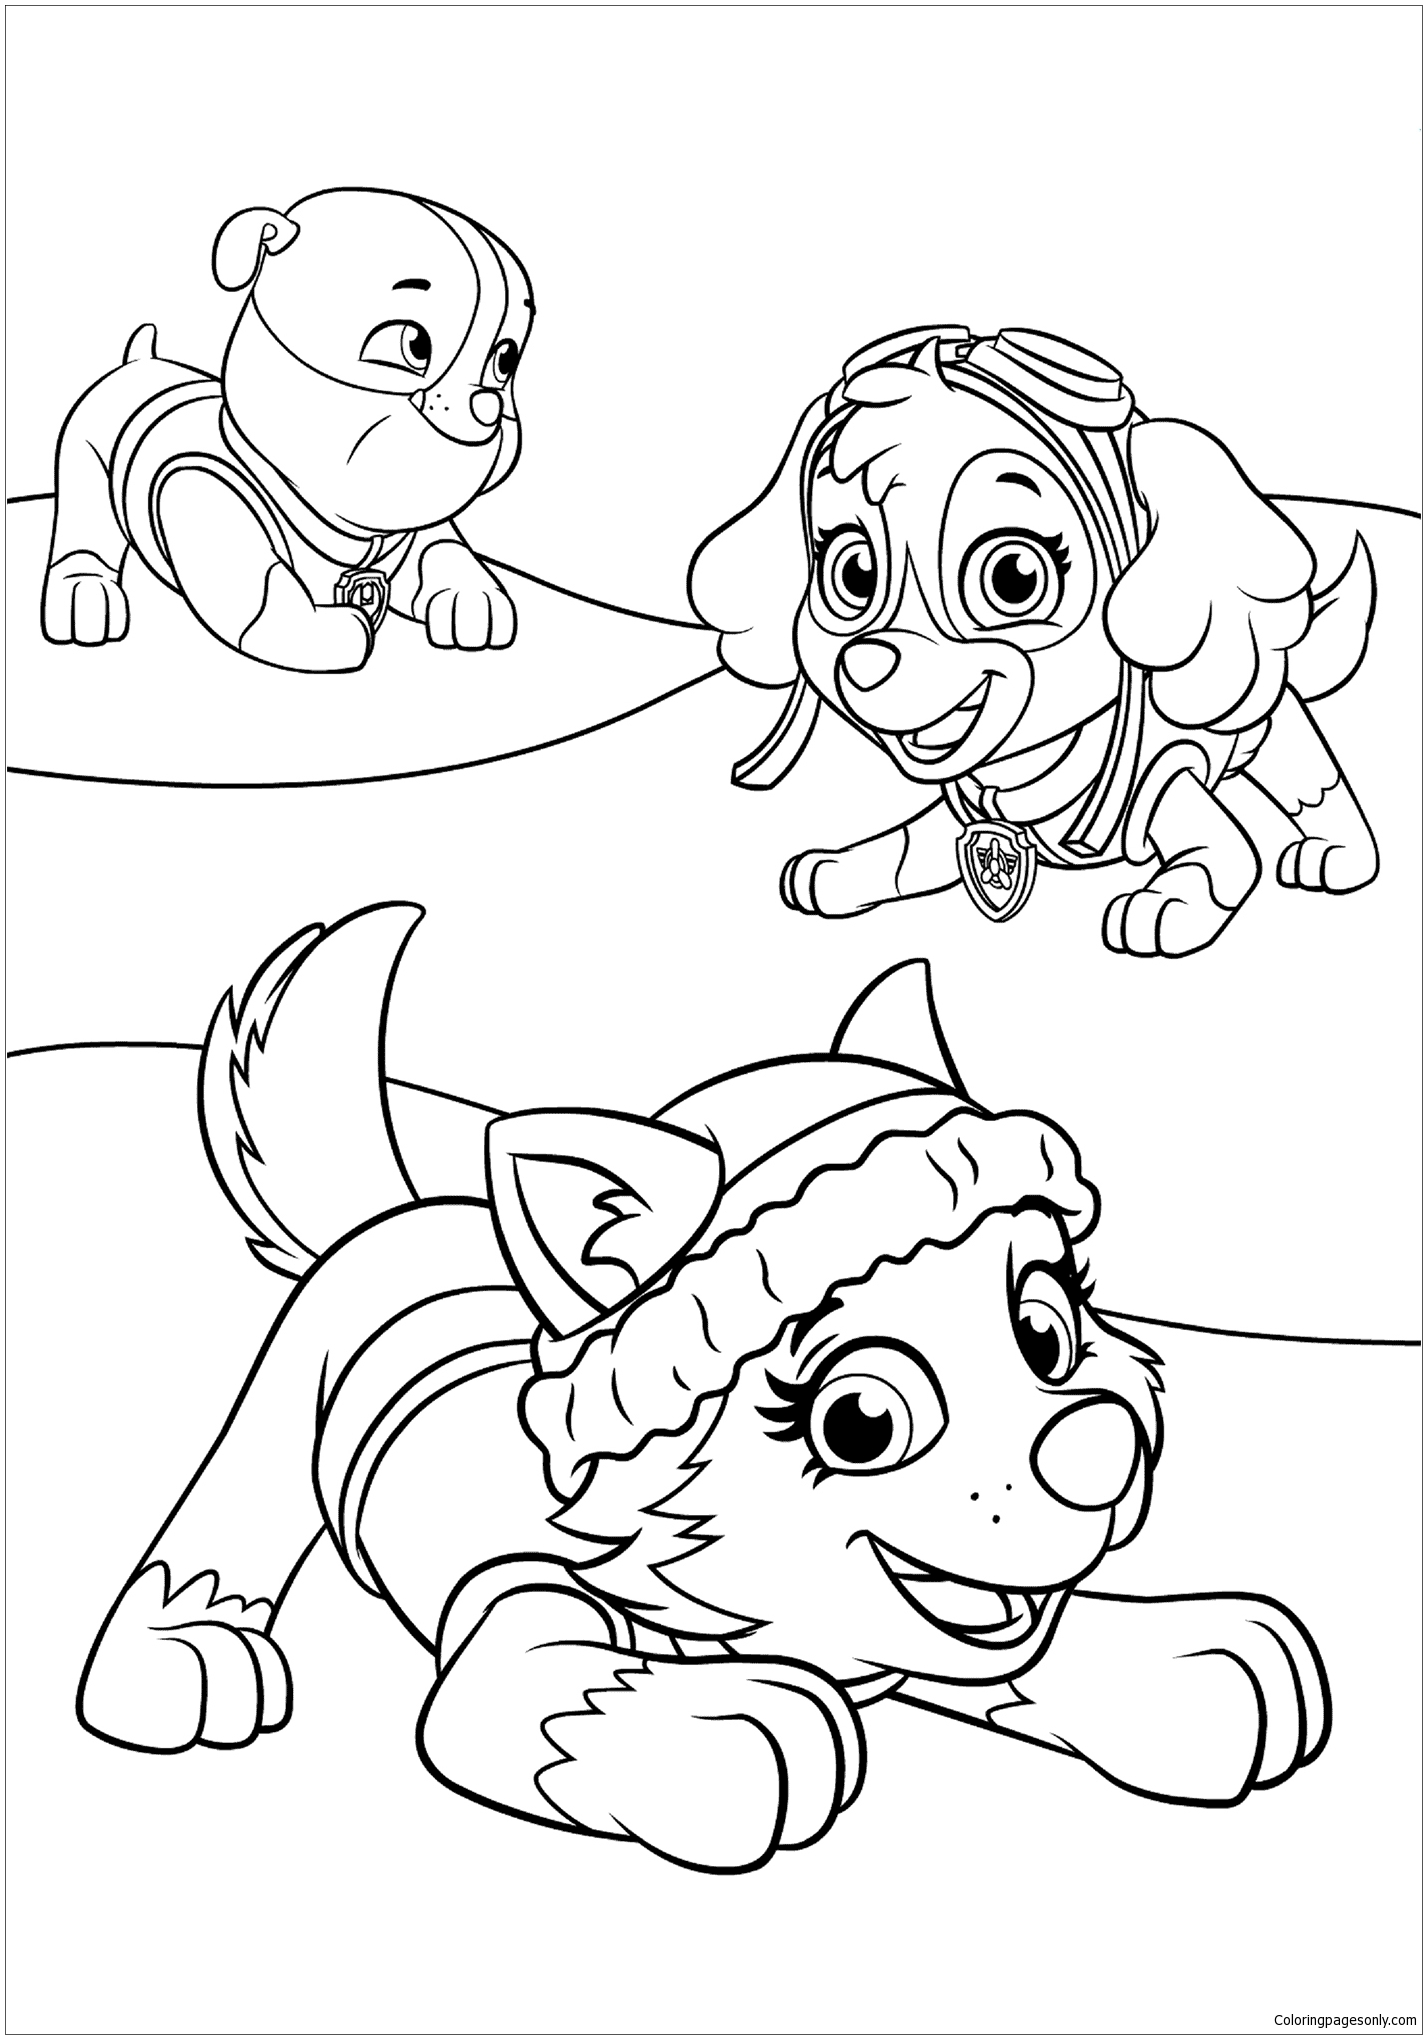 Paw Patrol 20 Coloring Page